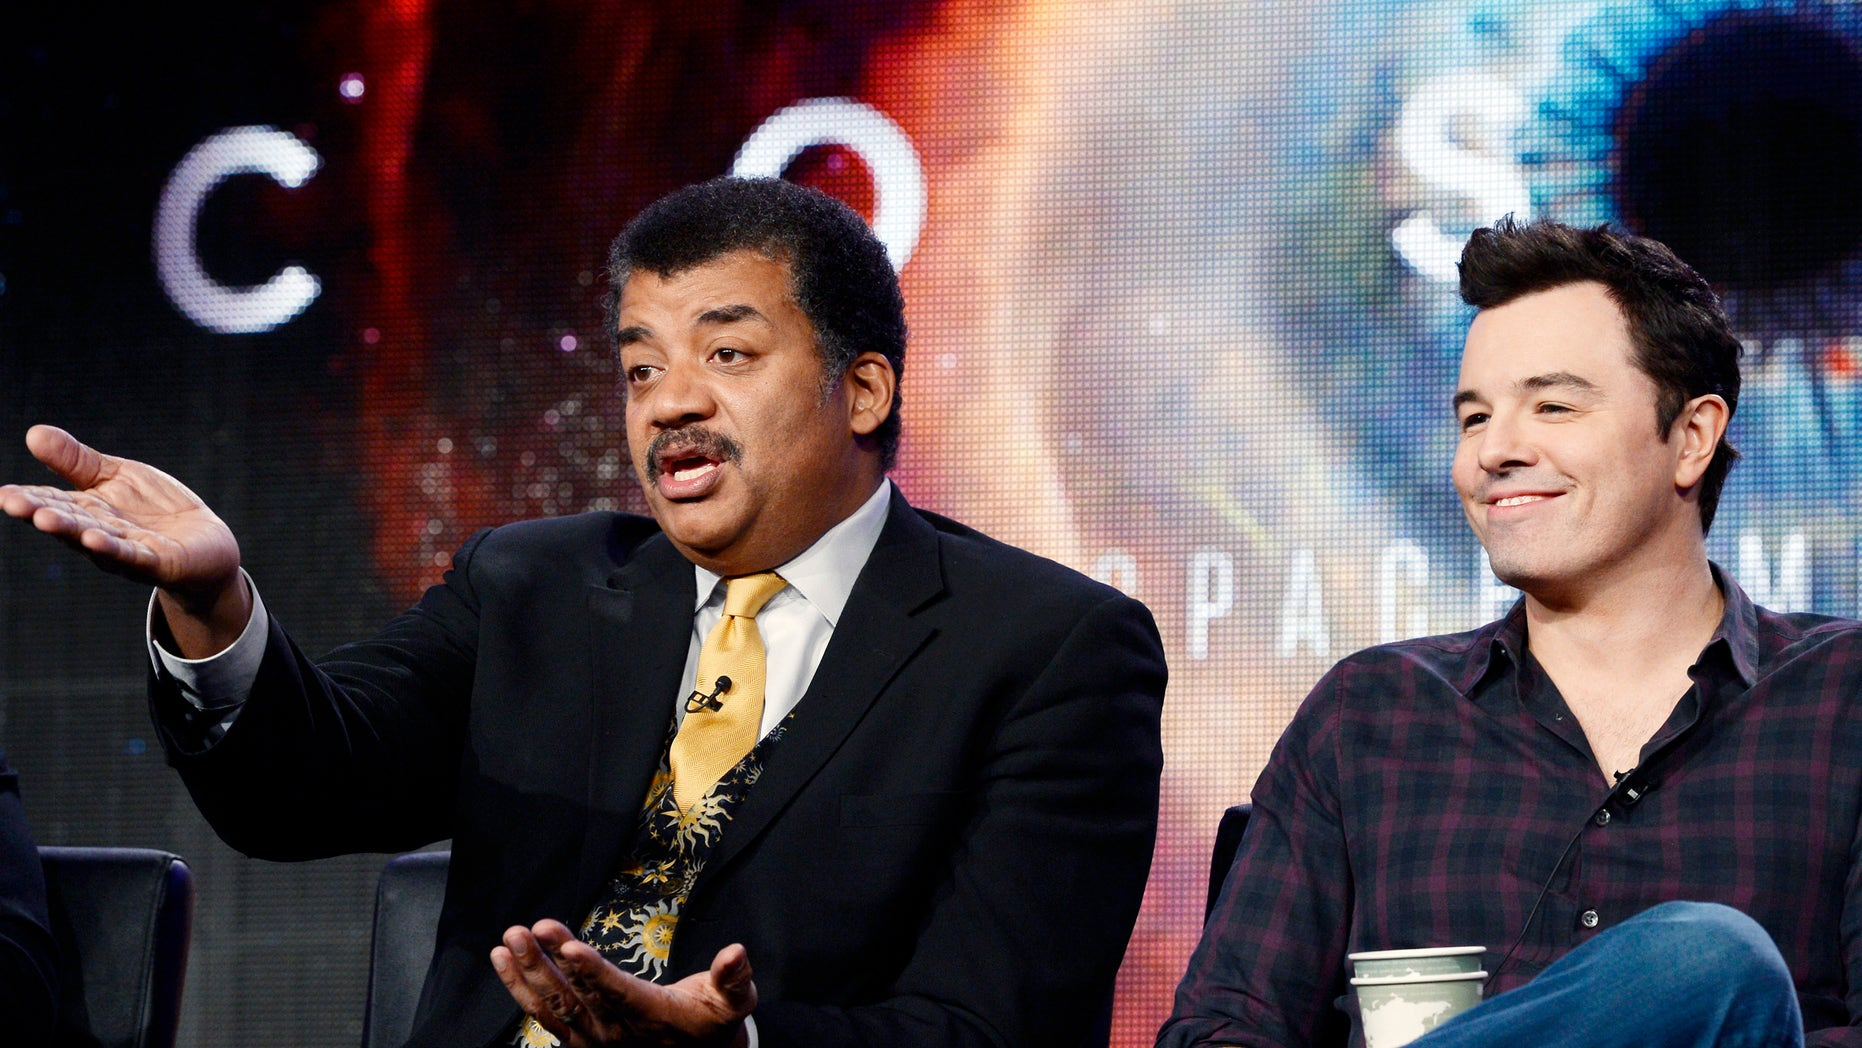 """January 13, 2014. Host Neil DeGrasse Tyson (L) and Seth MacFarlane, executive producer of  """"Cosmos,"""" participate in Fox Broadcasting Company's part of the Television Critics Association (TCA) Winter 2014 presentations in Pasadena, California."""